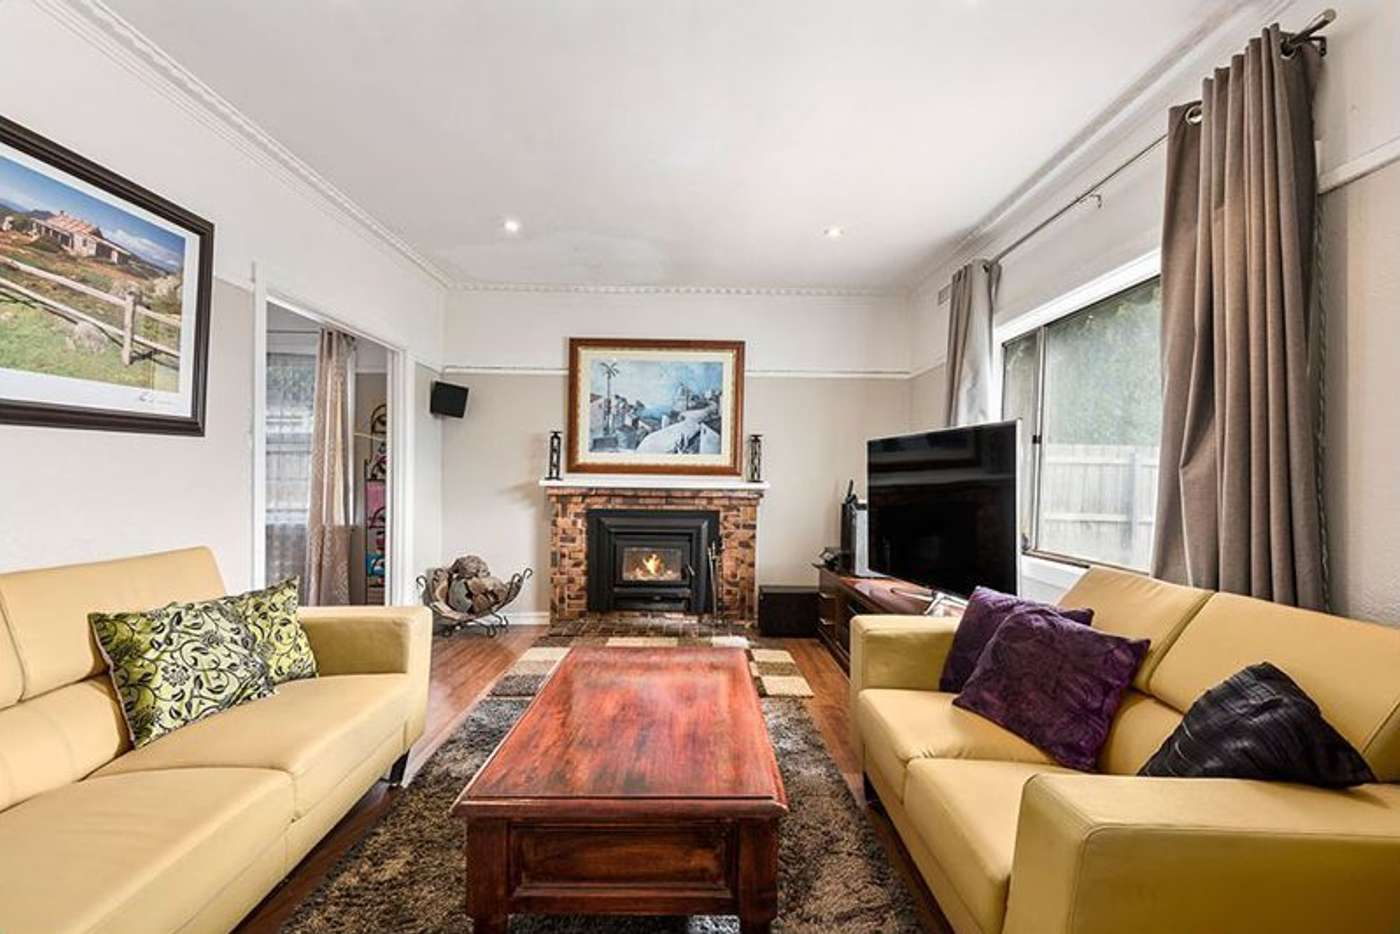 Fifth view of Homely house listing, 320 Warrigal Road, Oakleigh South VIC 3167